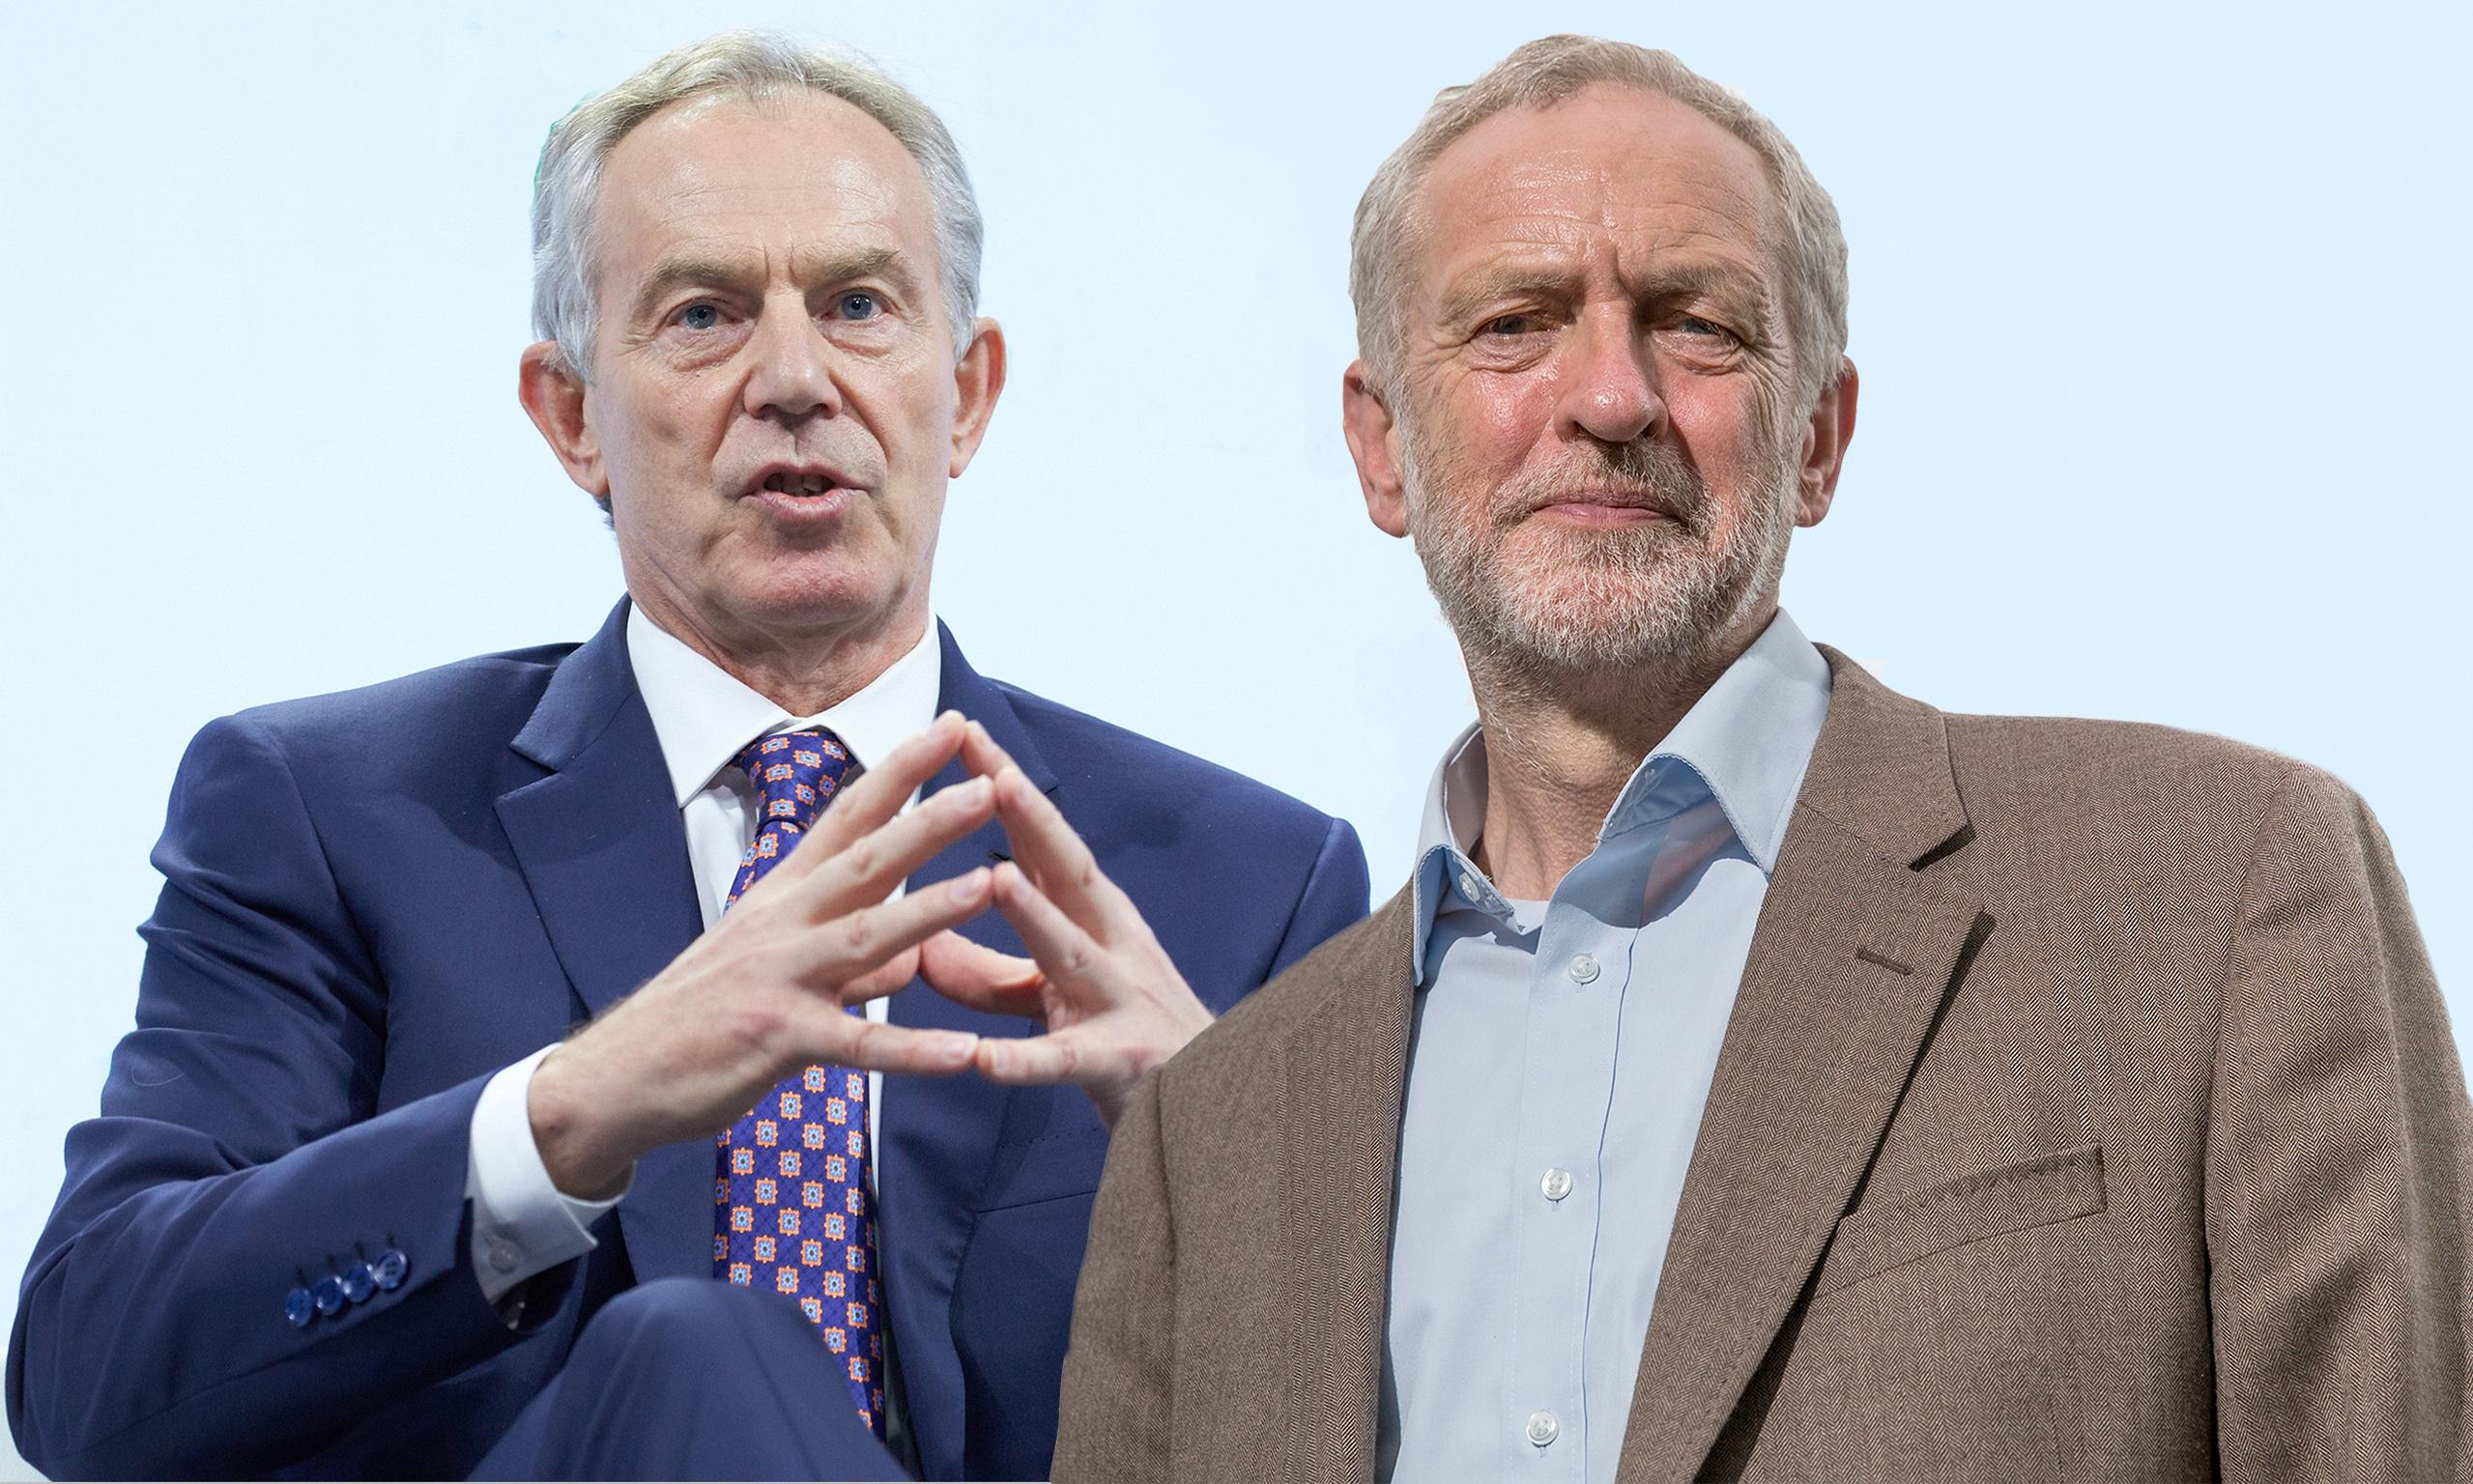 Labour to review language of Tony Blair's clause IV amendment